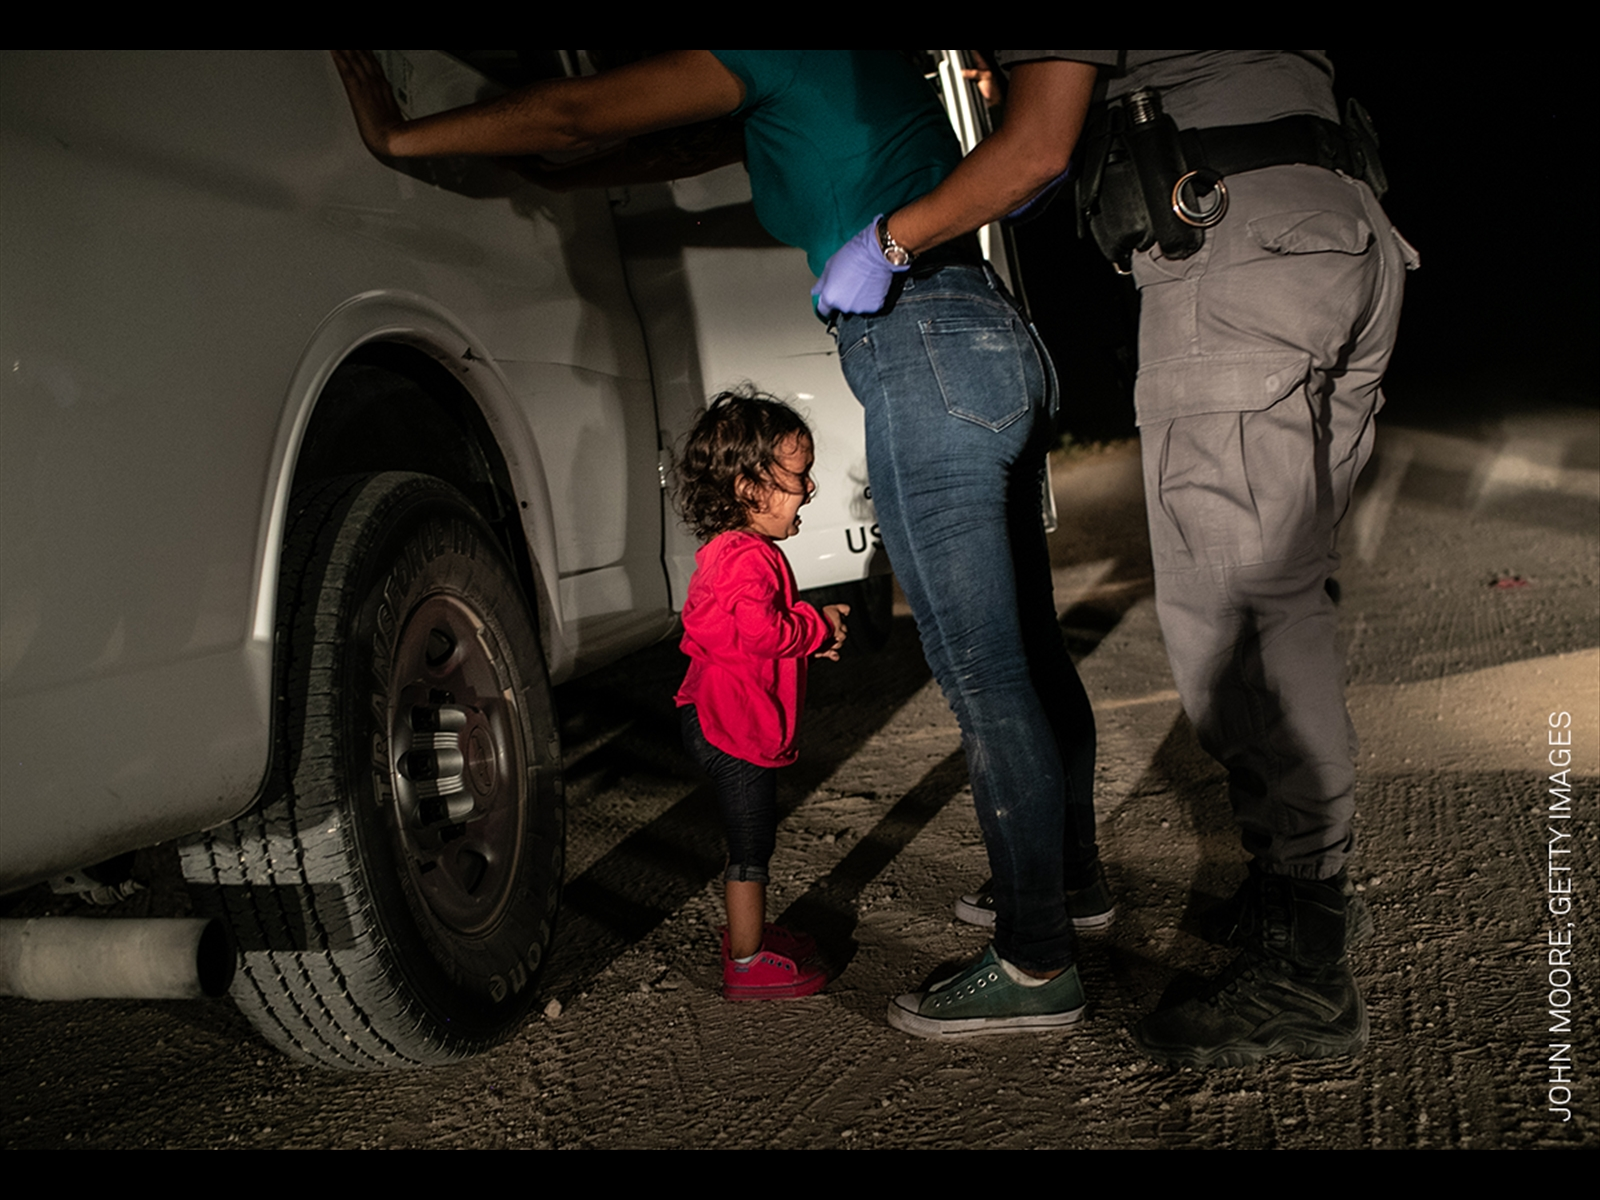 Getty Images. World Press Photo of the Year and Spot News, Singles, 1st Prize